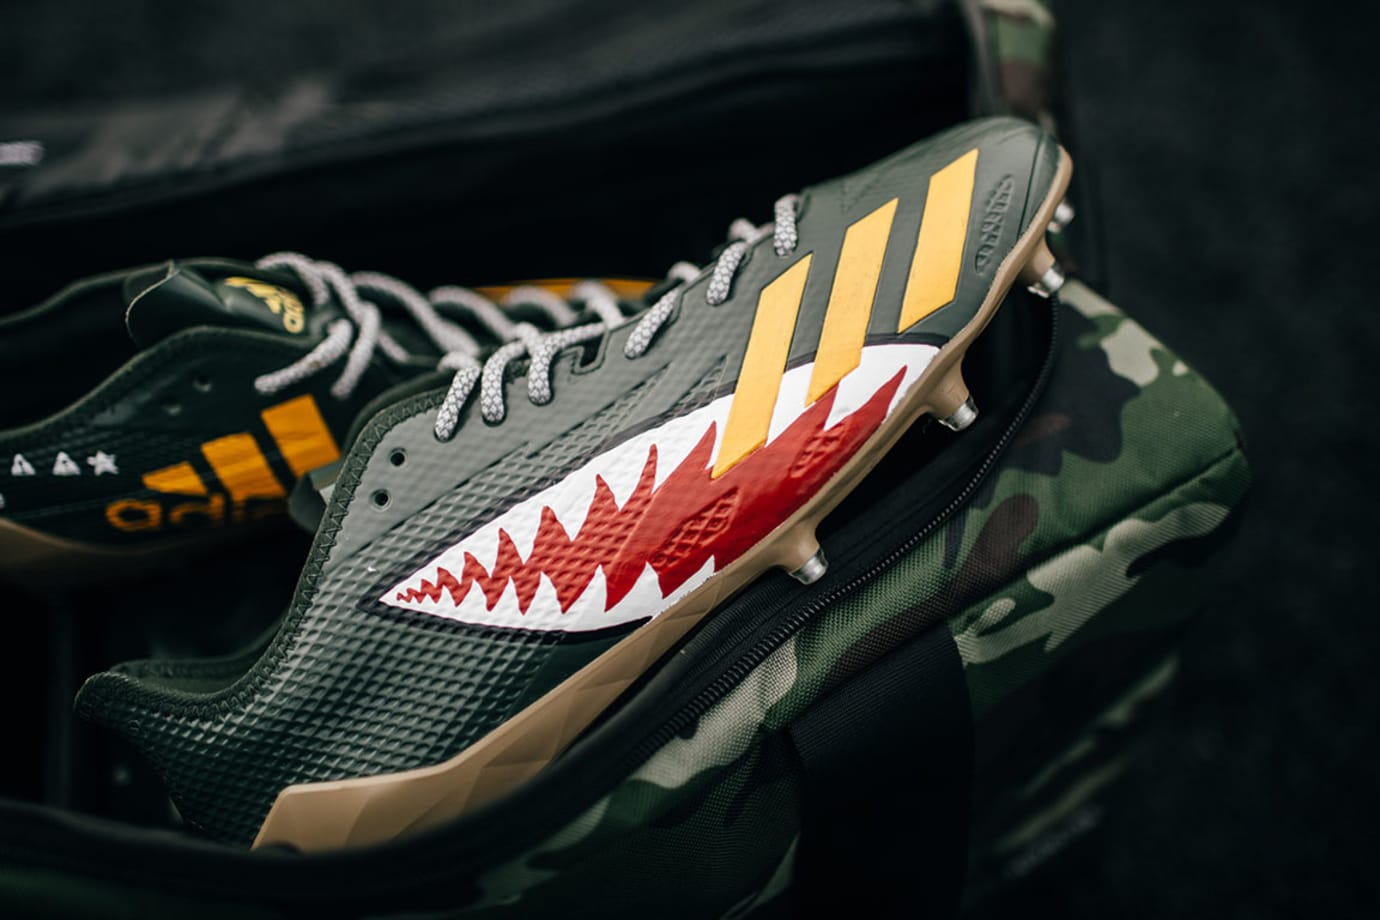 Adidas Call of Duty Cleats Josh Norman